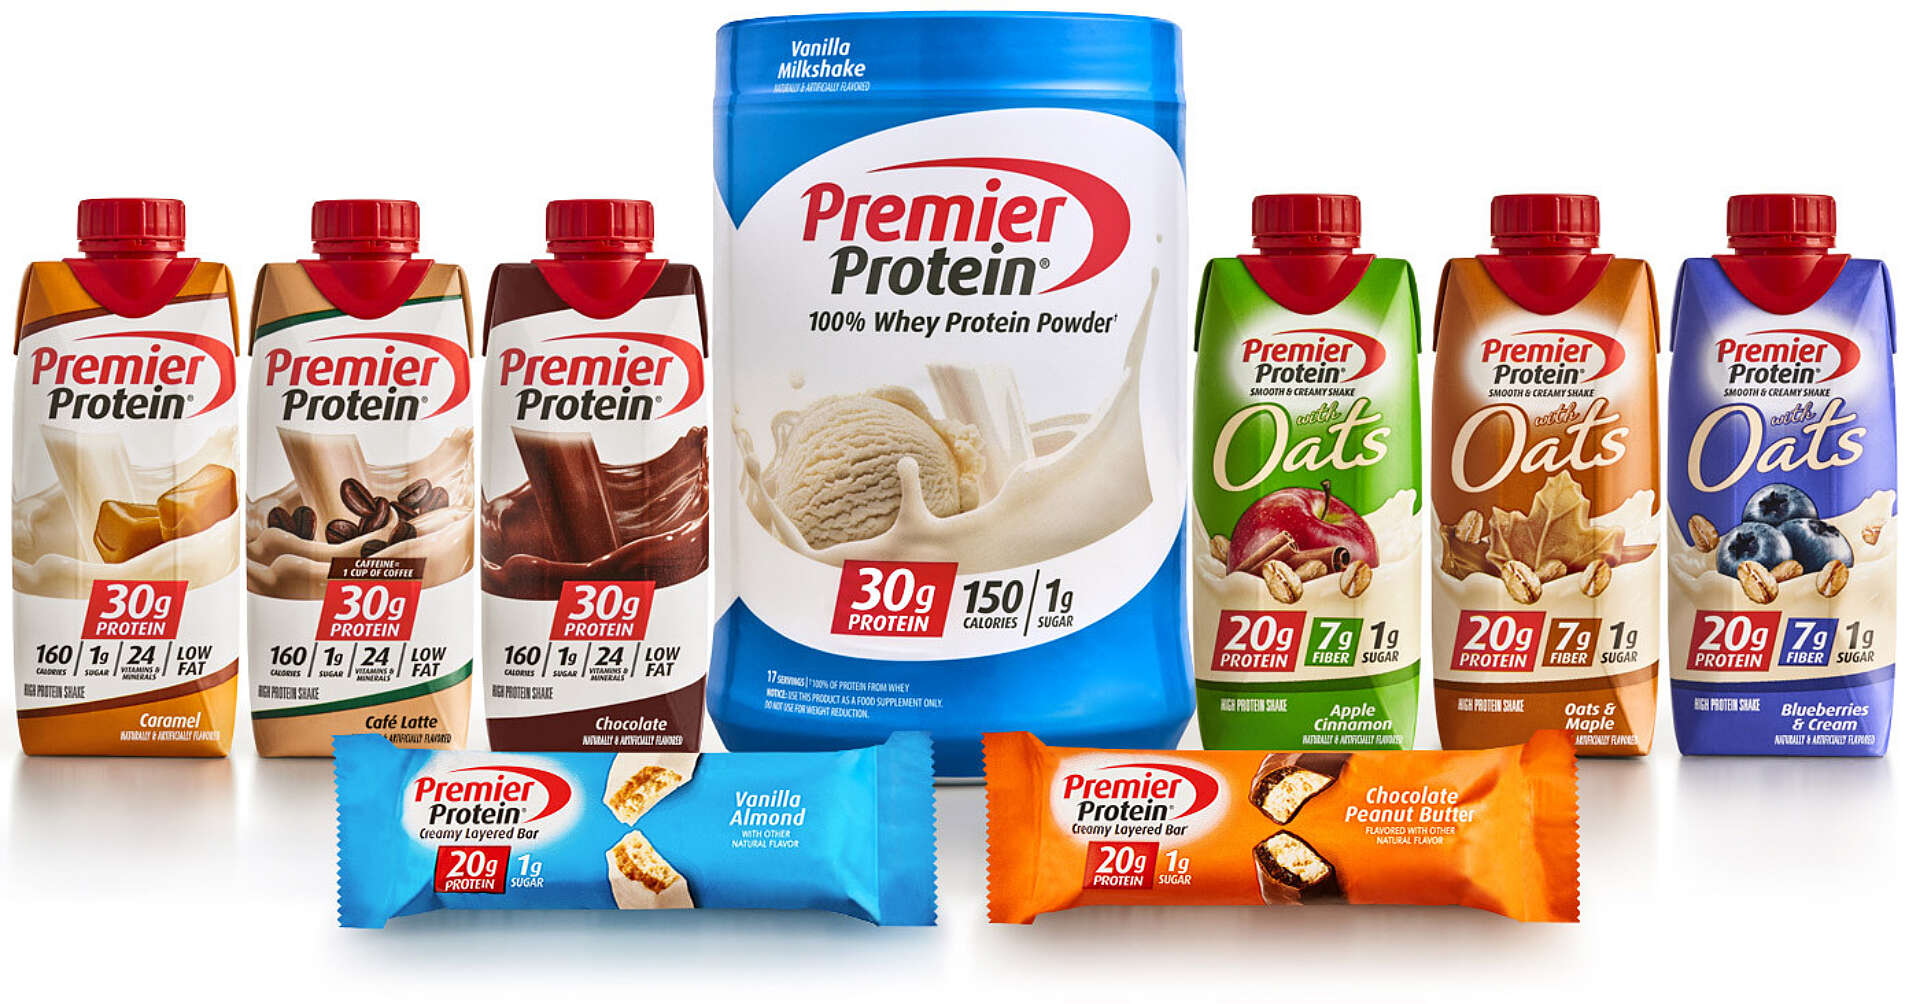 Premier Protein Products Family